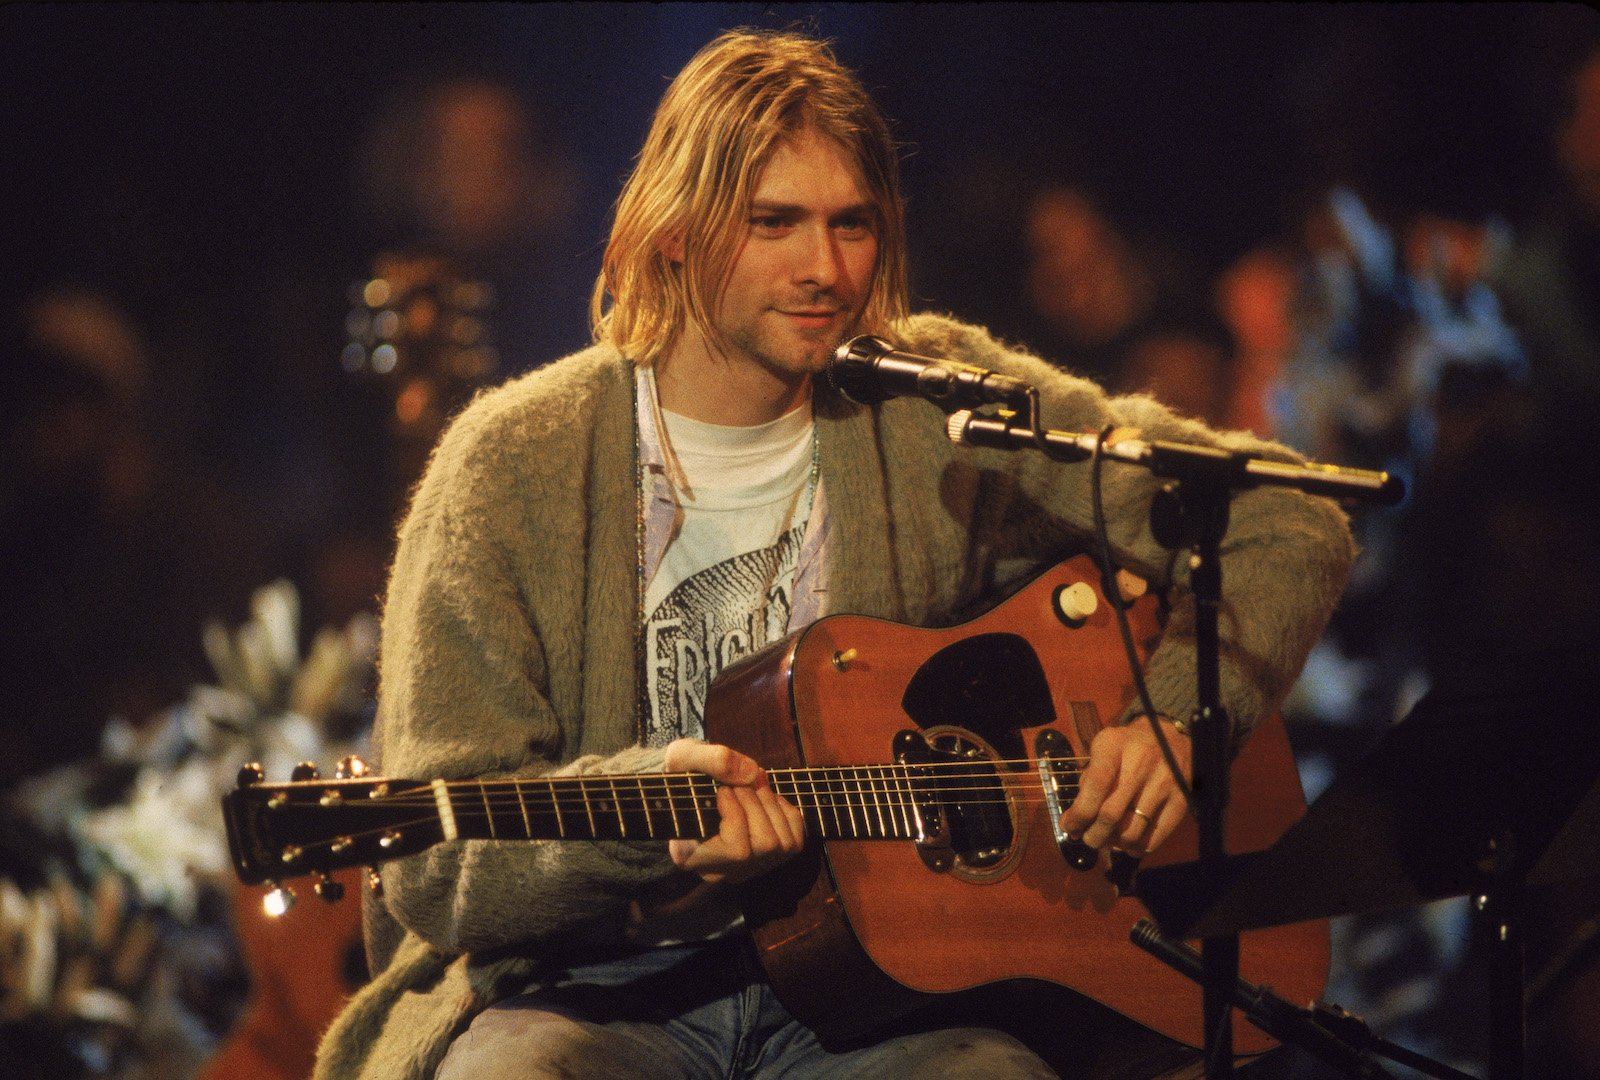 Iconic Kurt Cobain guitar goes to Frances Bean's ex after 2-year legal battle https://t.co/sCHv8GqNUa https://t.co/O6wCXMJxUf